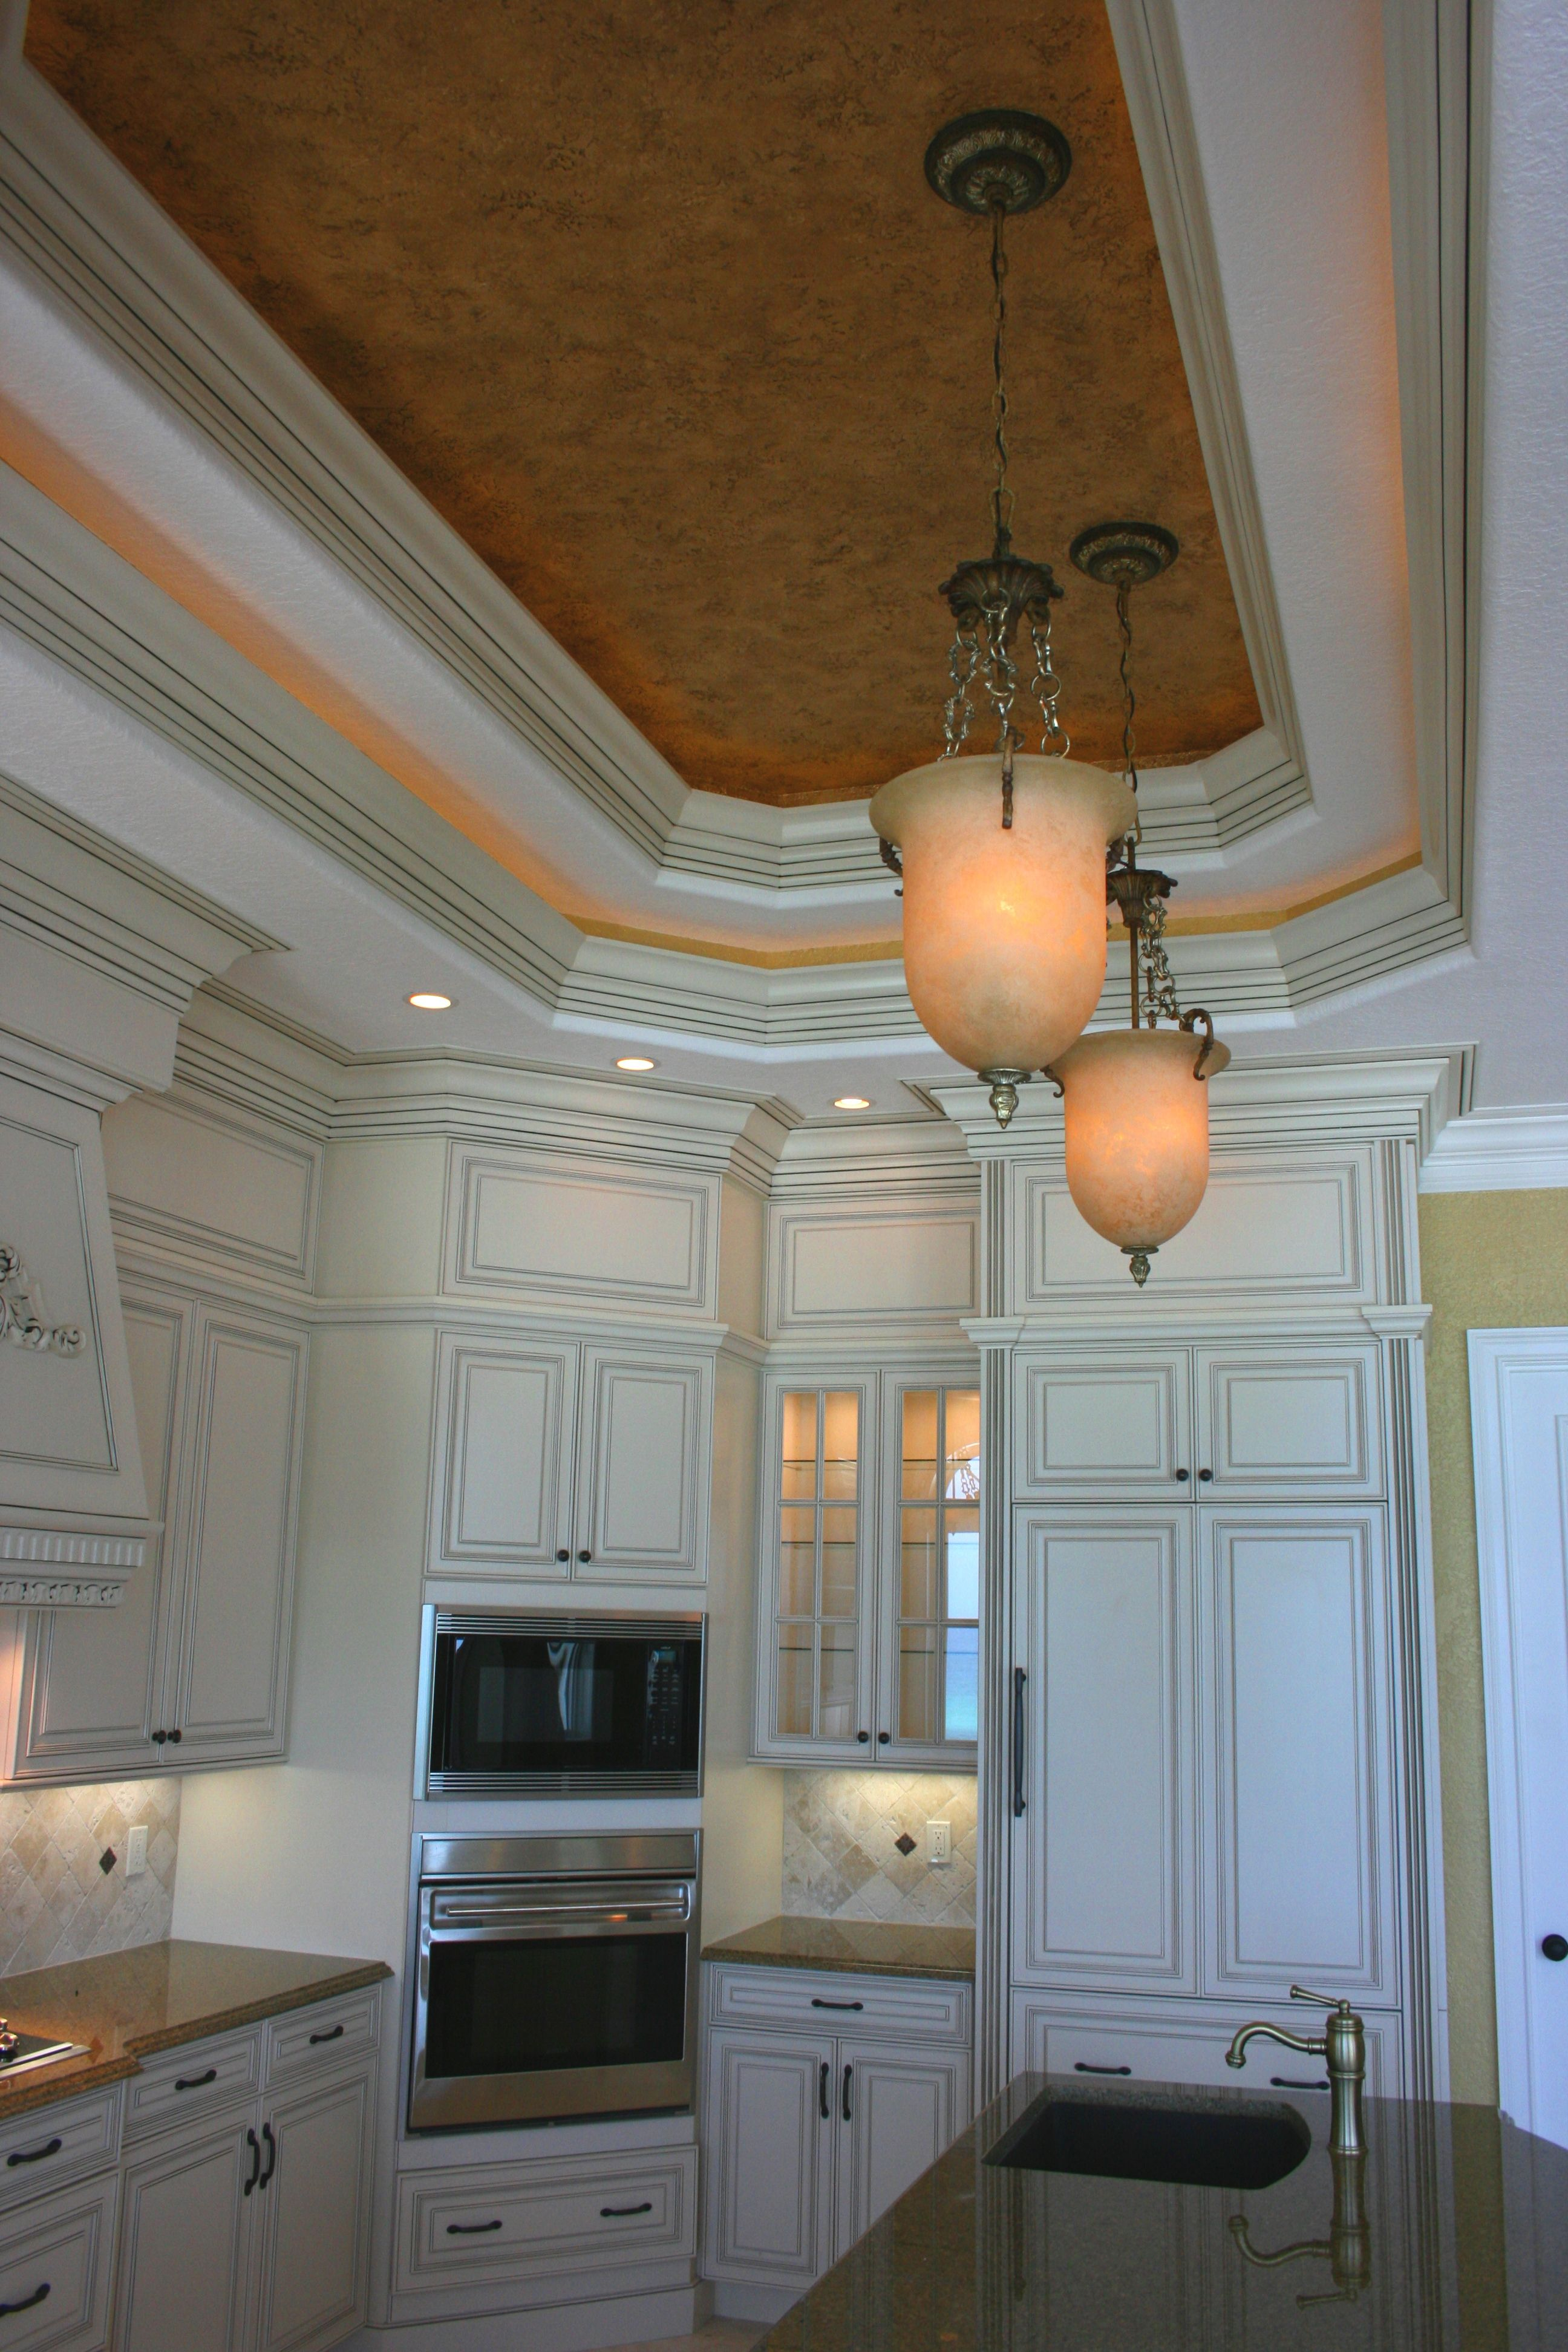 interior awesome will light crazy ceilings go home ceiling you lighting fixtures lights with about kitchen that design